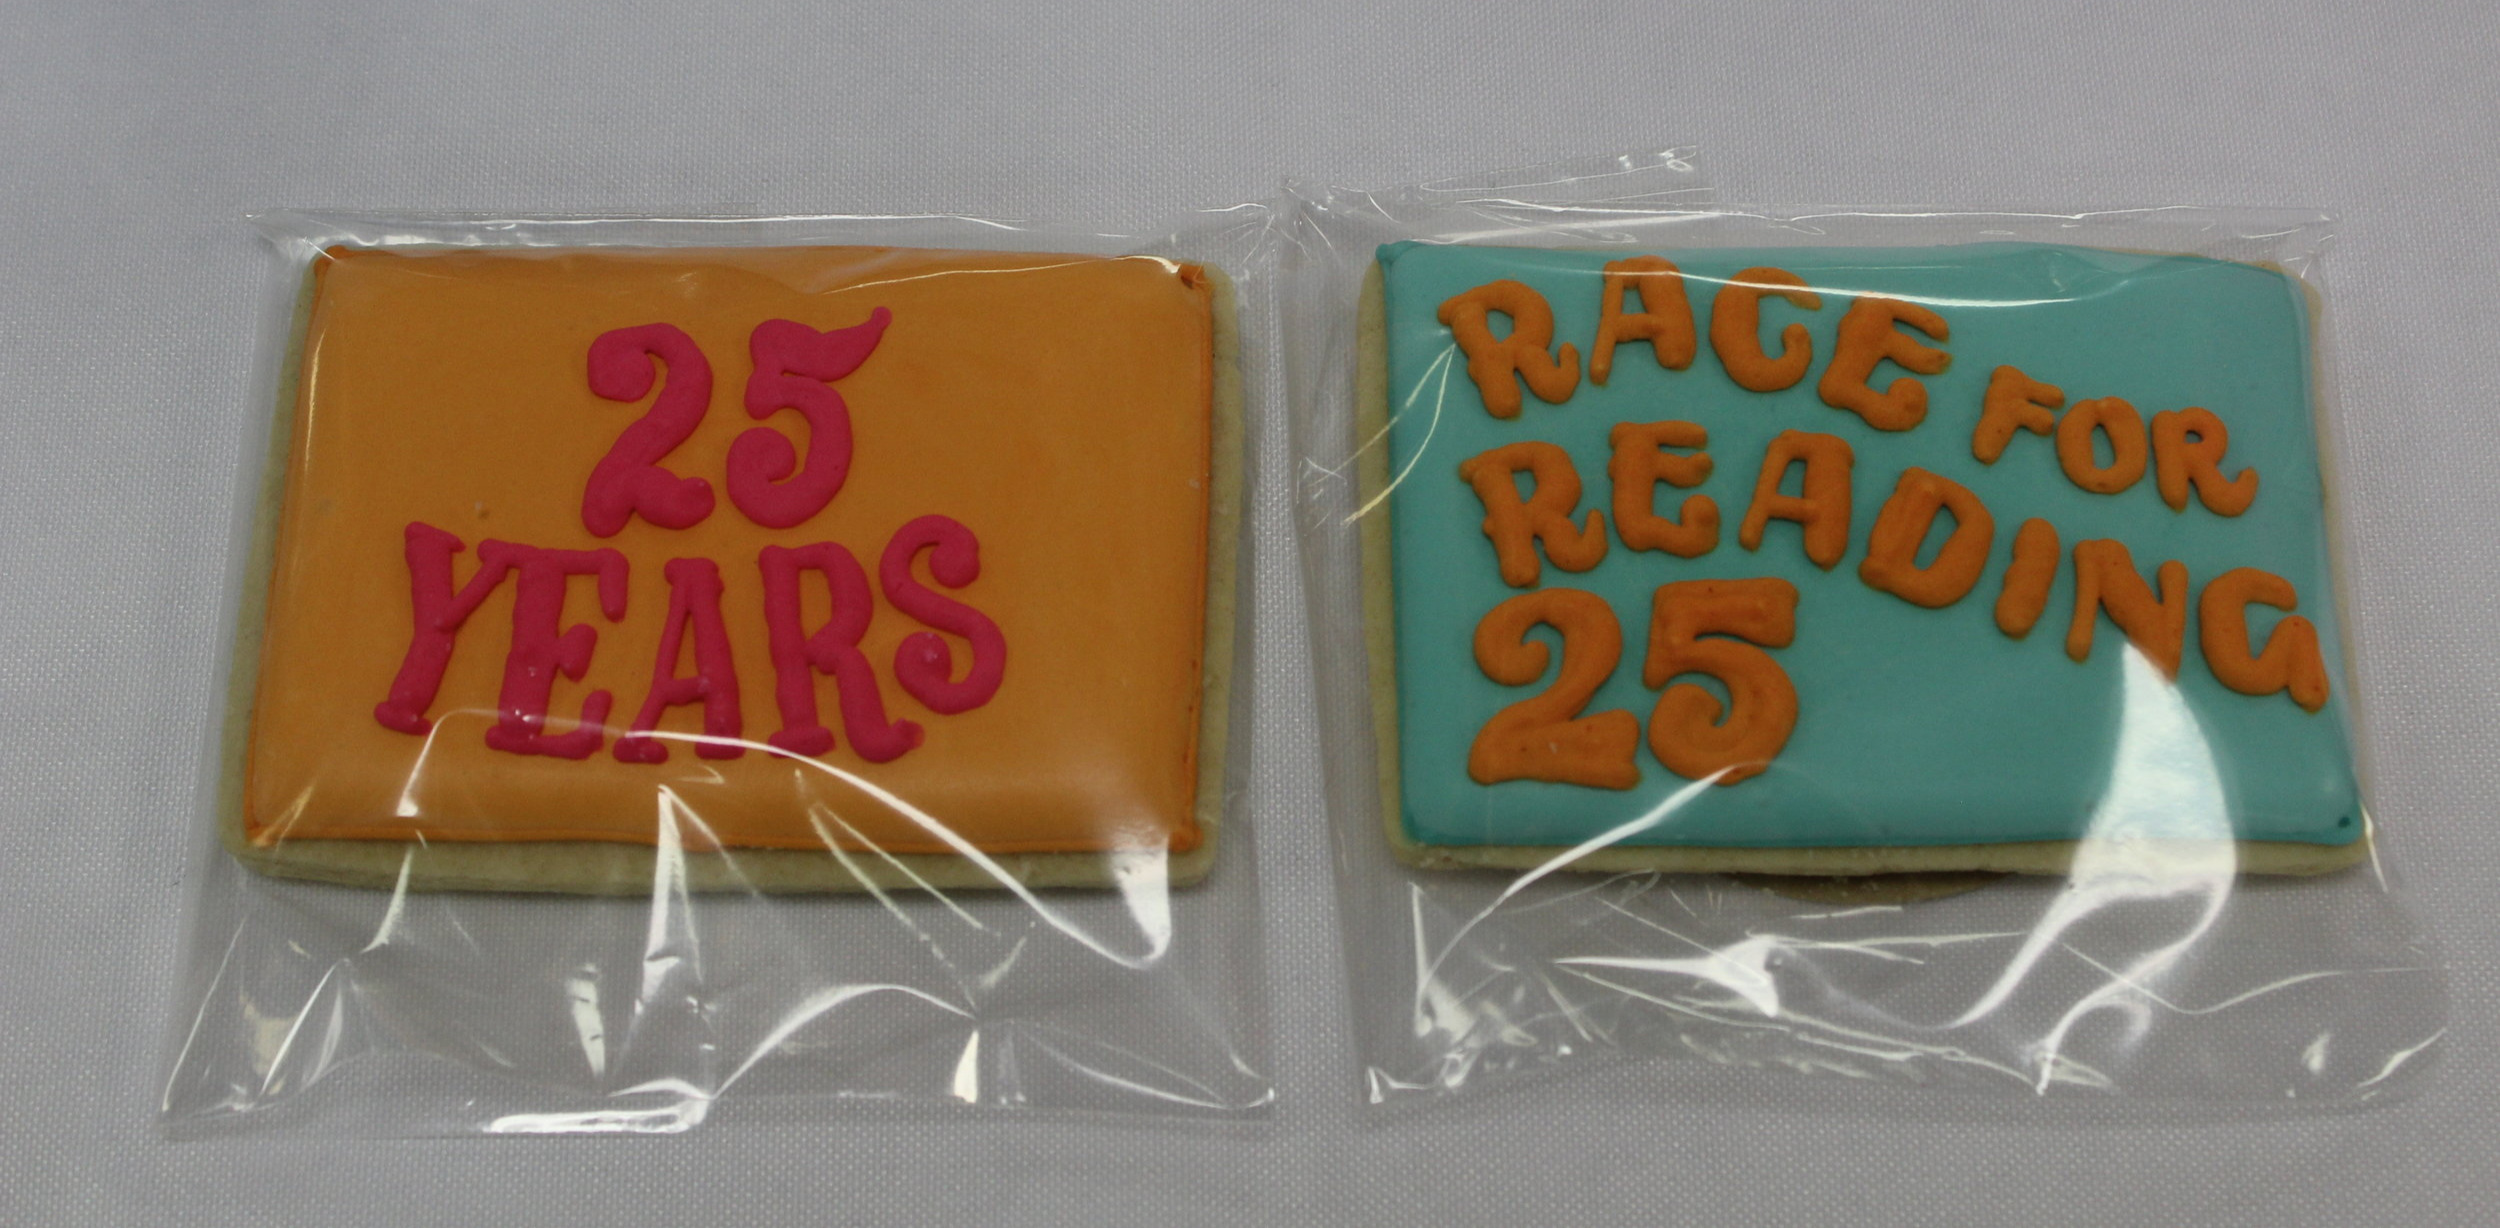 PCLC Board Members provided special cookies to mark the 25th Annual Race for Reading.